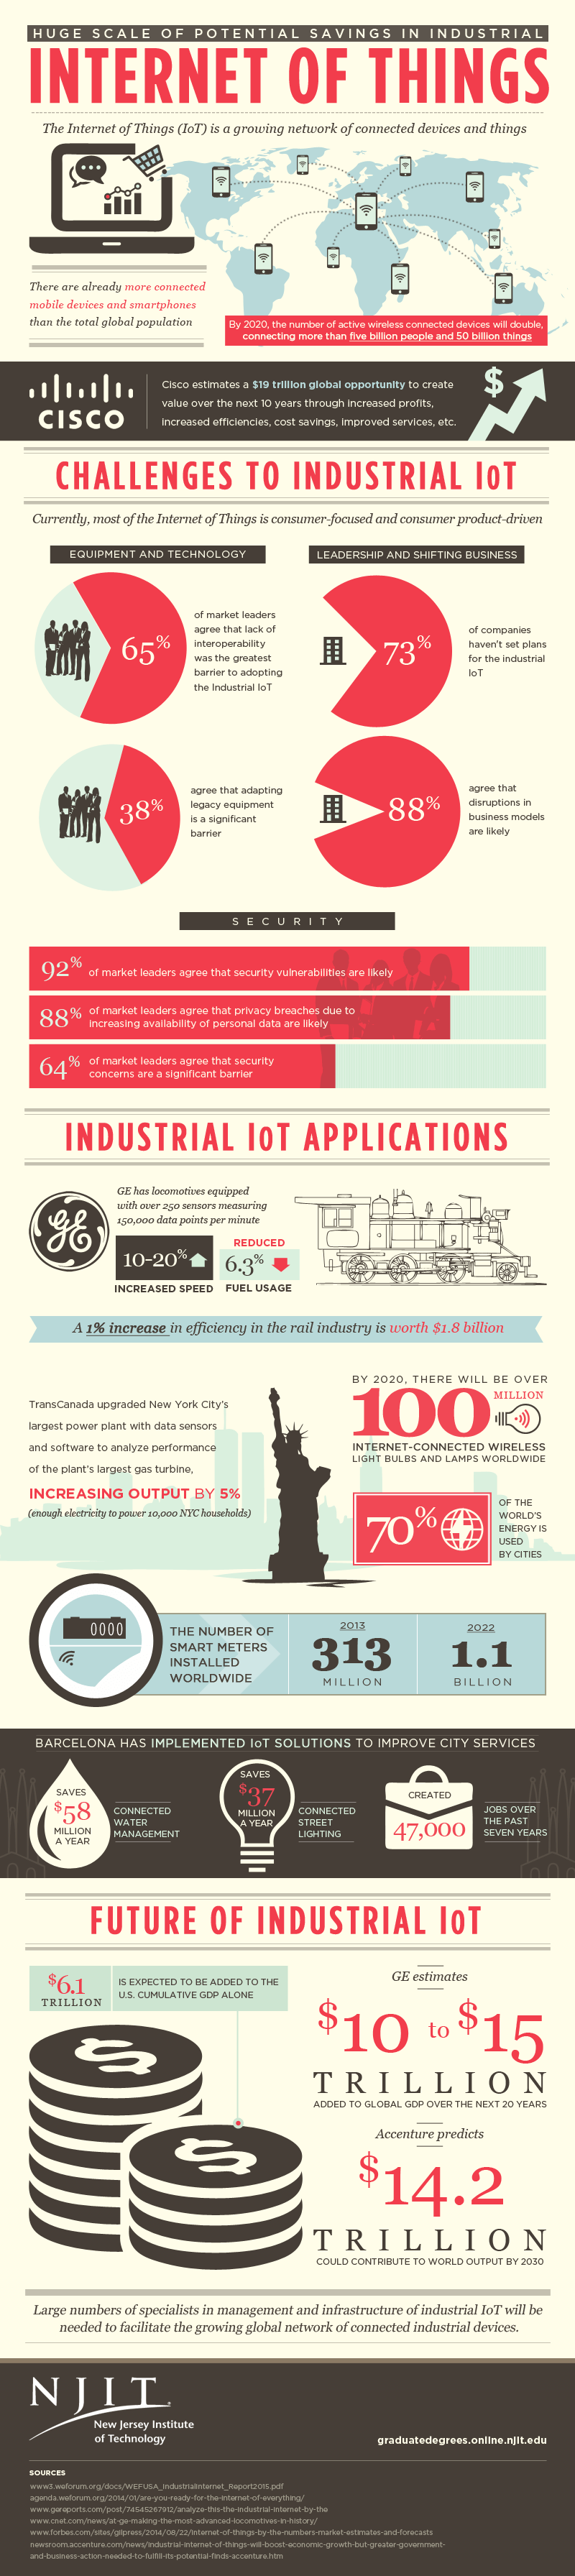 Huge Scale Of Potential Savings In Industrial: Internet Of Things #Infographic